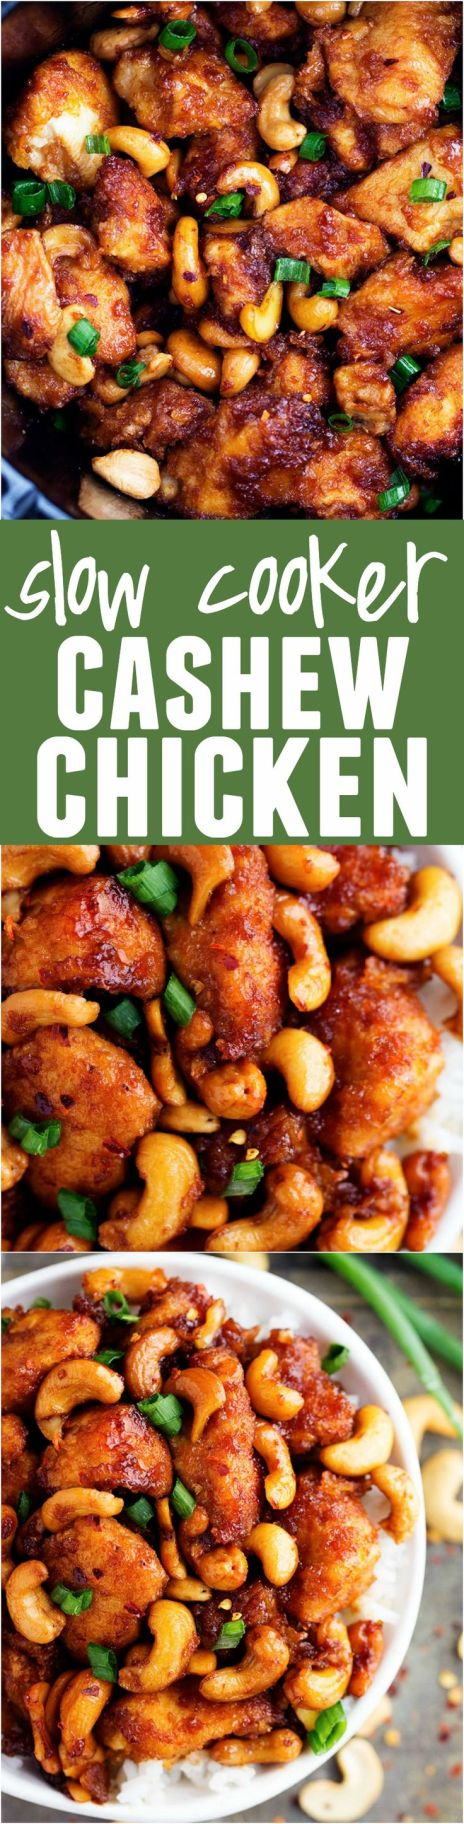 This Slow Cooker Cashew Chicken is WAY better than takeout!!! One of the best things I have ever had!!!!: